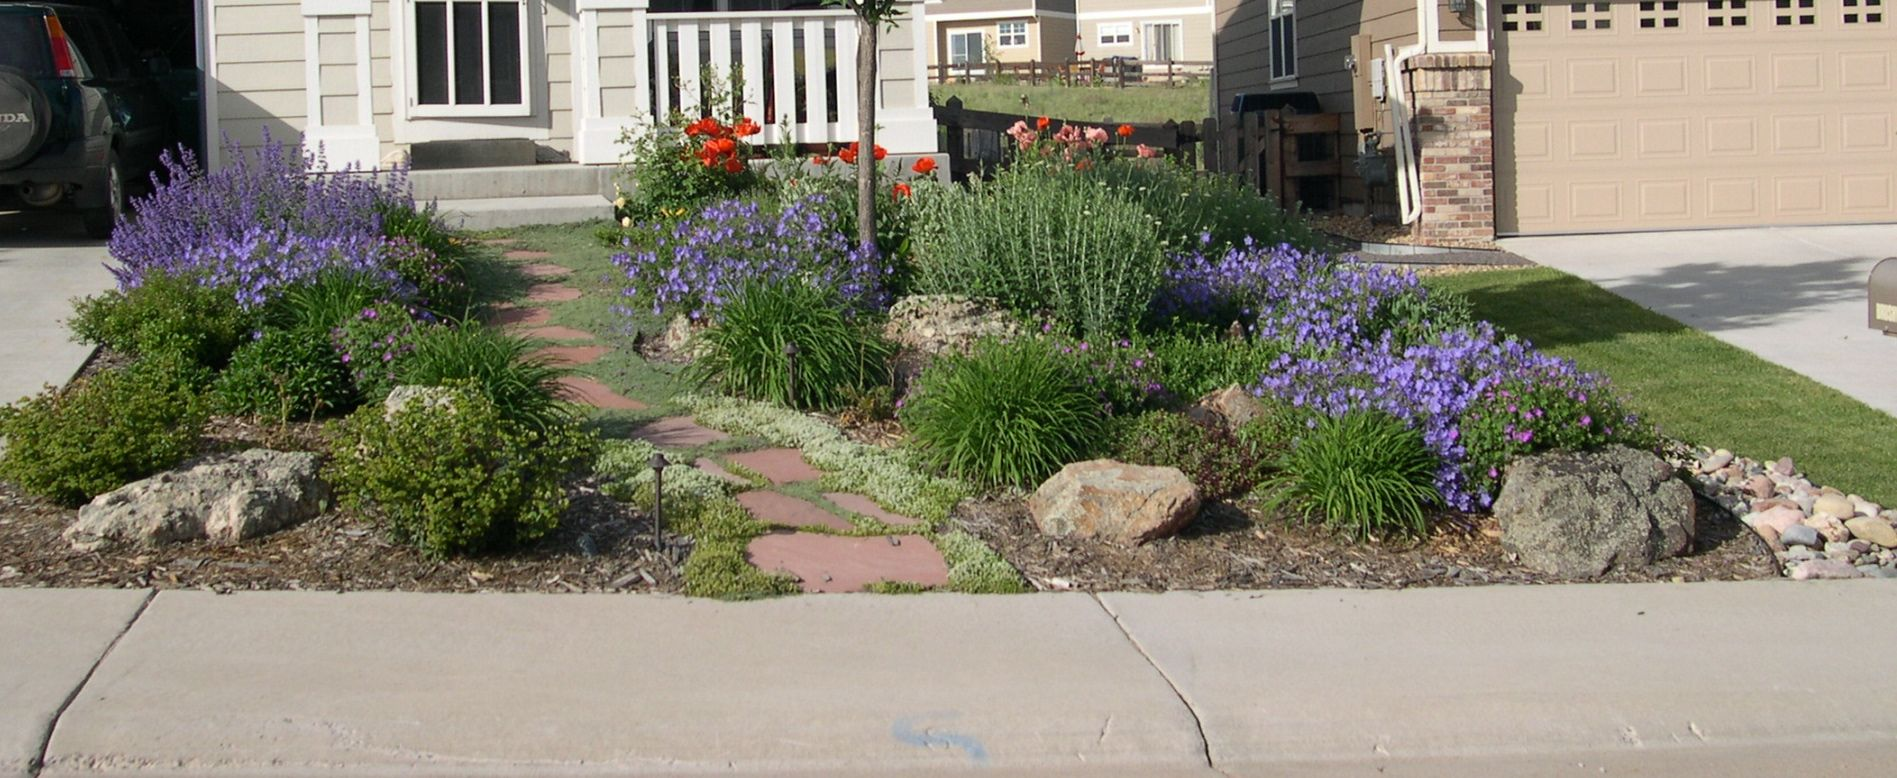 How To Care For Lawn With Little Water  Xeriscape front yard